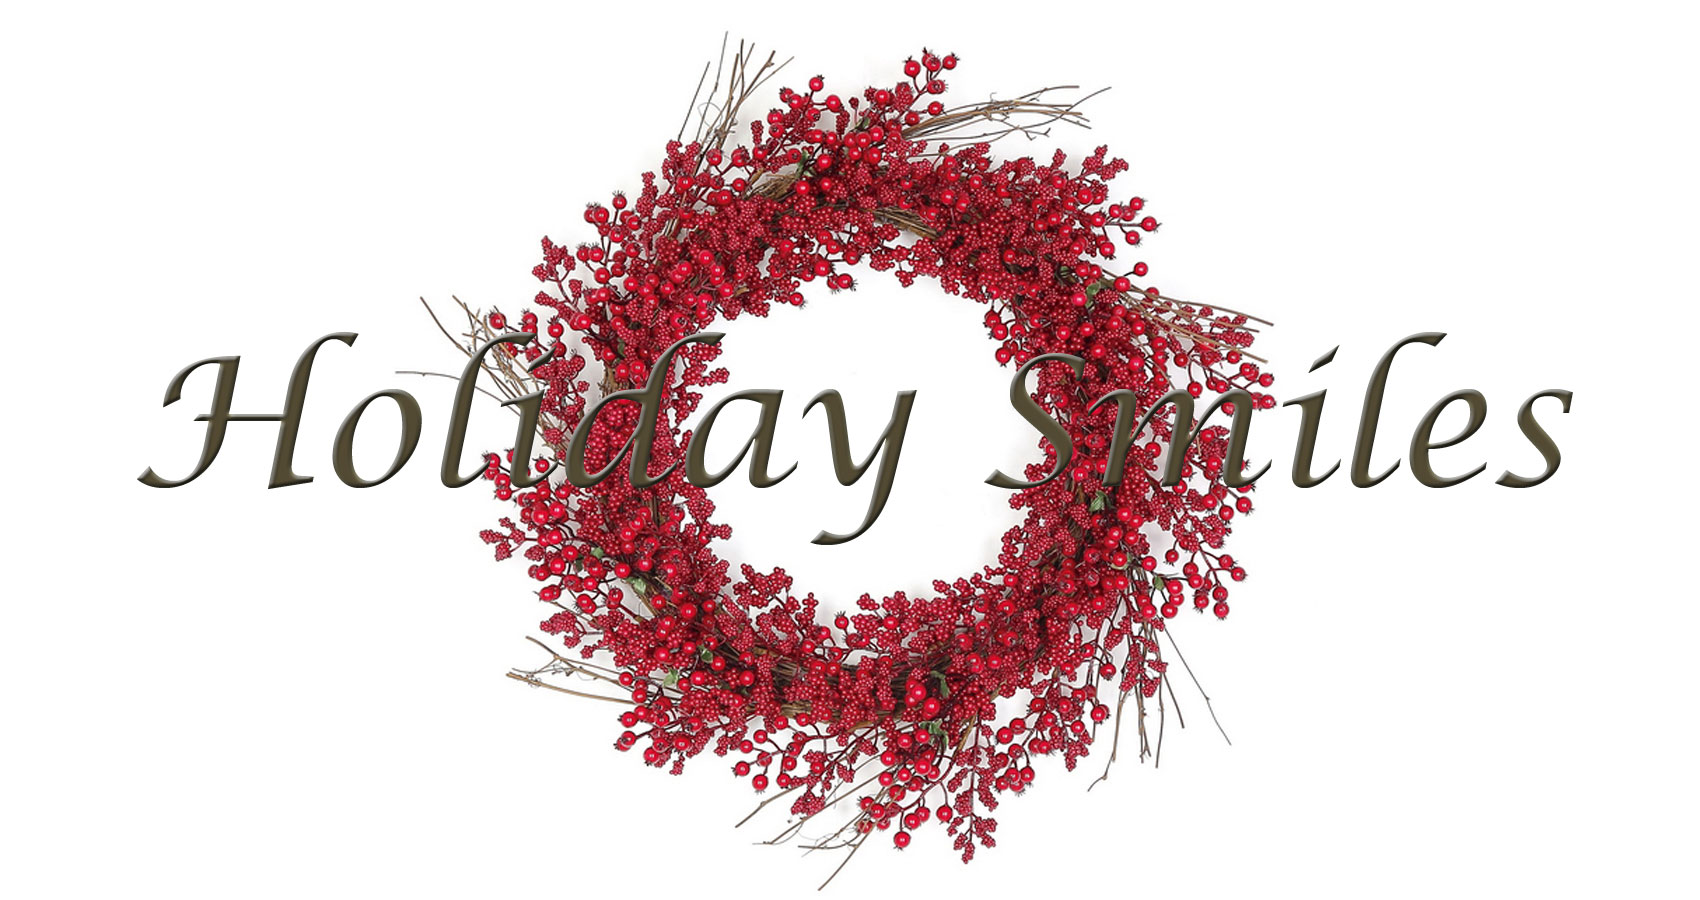 Holiday Smiles written by Deborah P Kolodji at Spillwords.com